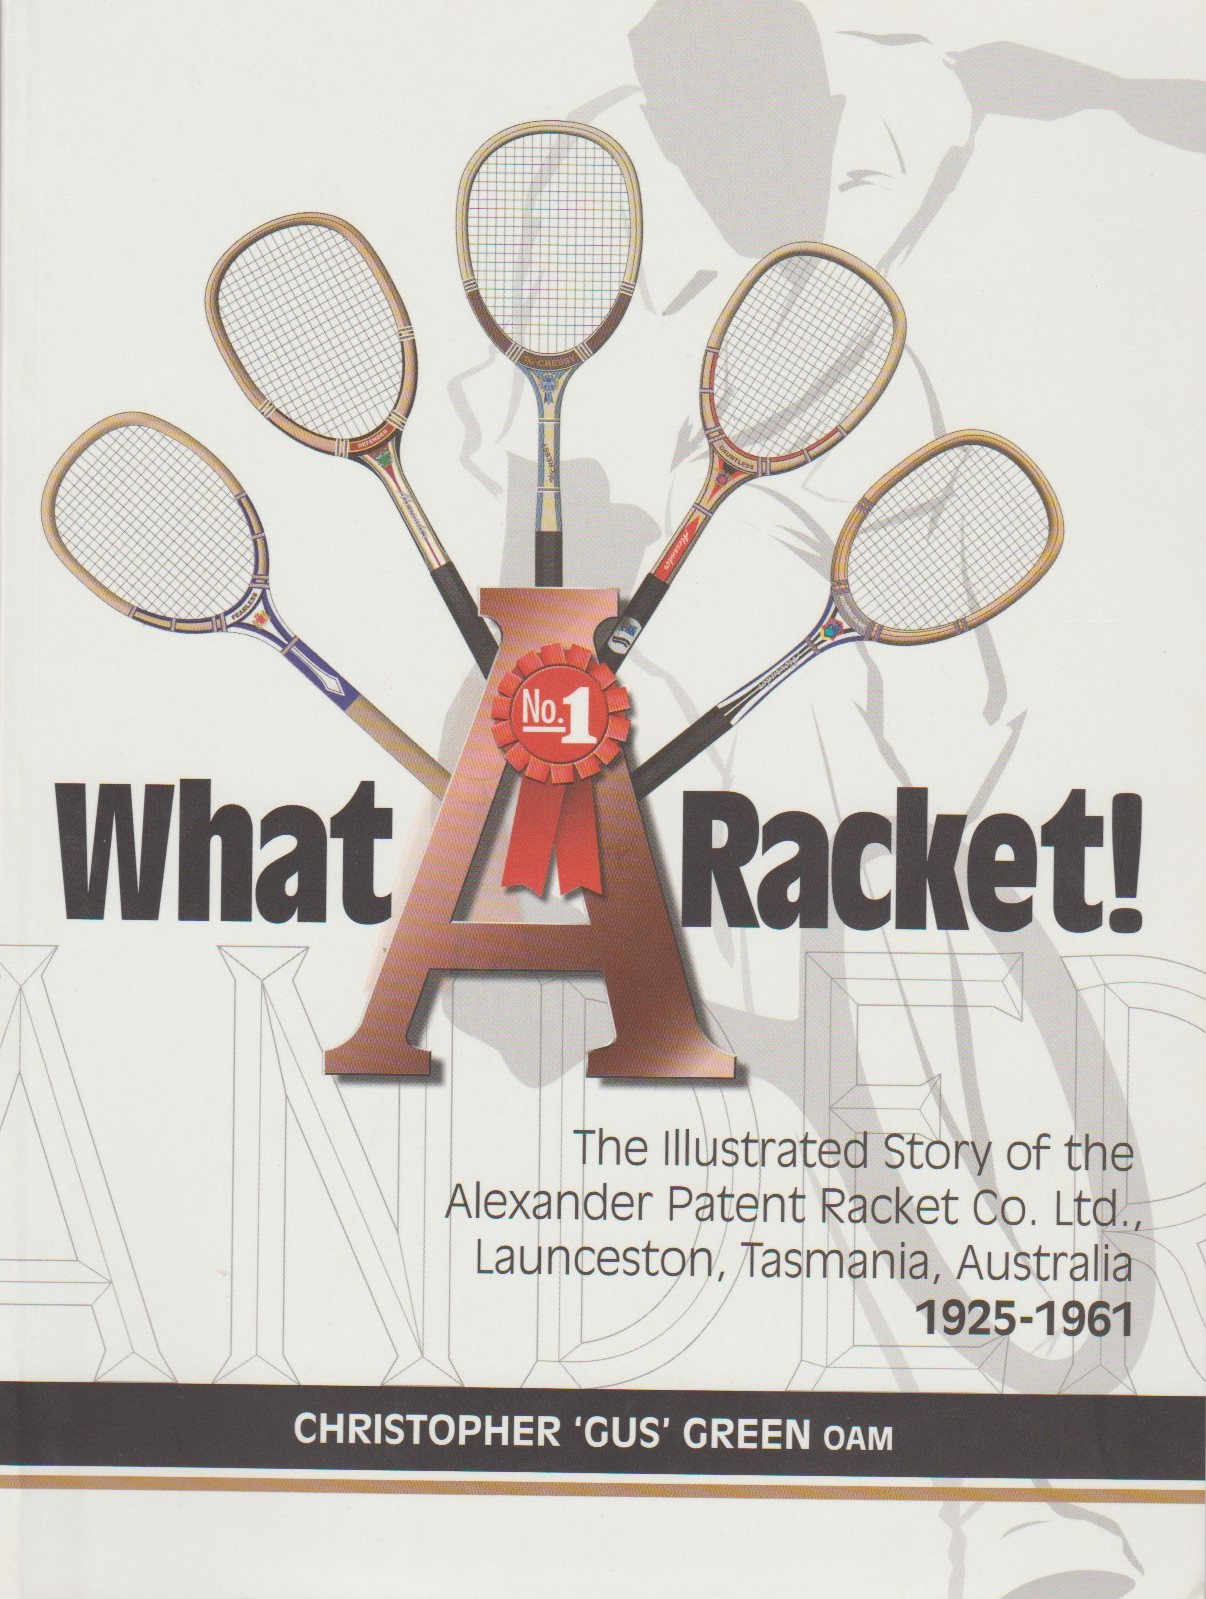 What a Racket!